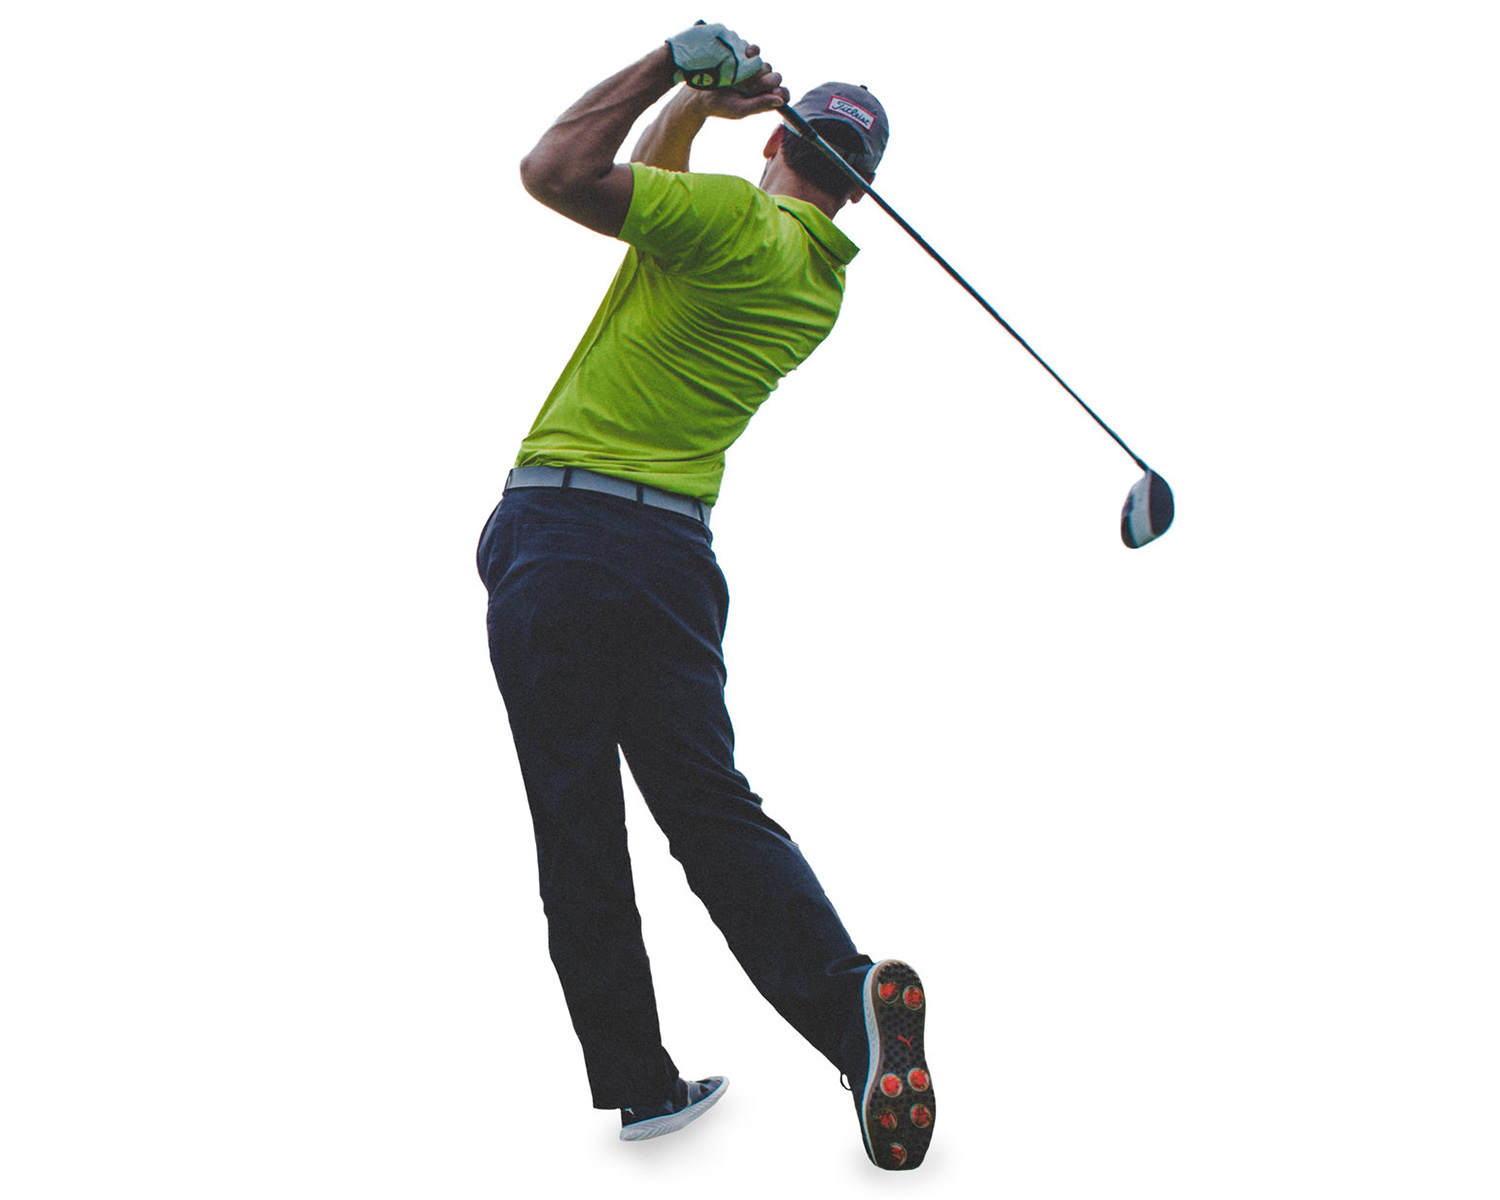 Swing Analysis - Bertec provides state of the art force plate technology as the platform for the Swing Catalyst software. Swing Catalyst is already being used by the top golf and baseball players and coaches around the world. The system gives the coach and player the tools to analyze their swing in the most effective way possible, from the ground up. By syncing this data up to the video, coaches can look at how efficient the player uses the ground to generate power, frame by frame.Learn More